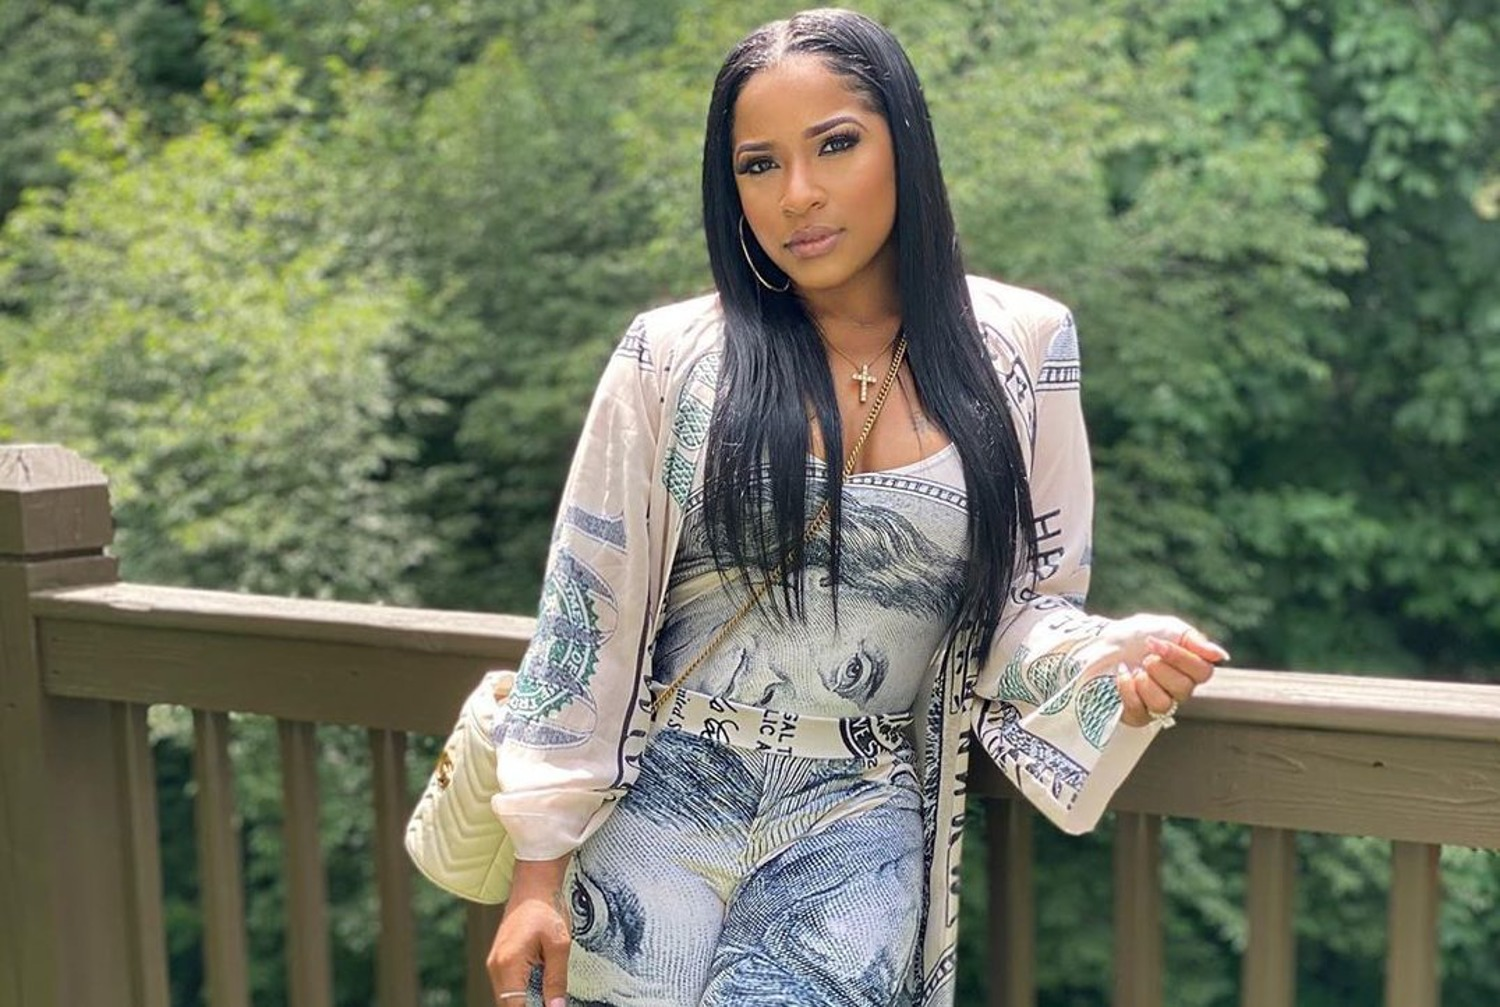 toya-johnson-has-an-early-birthday-dinner-see-the-footage-of-the-amazing-scenery-and-decor